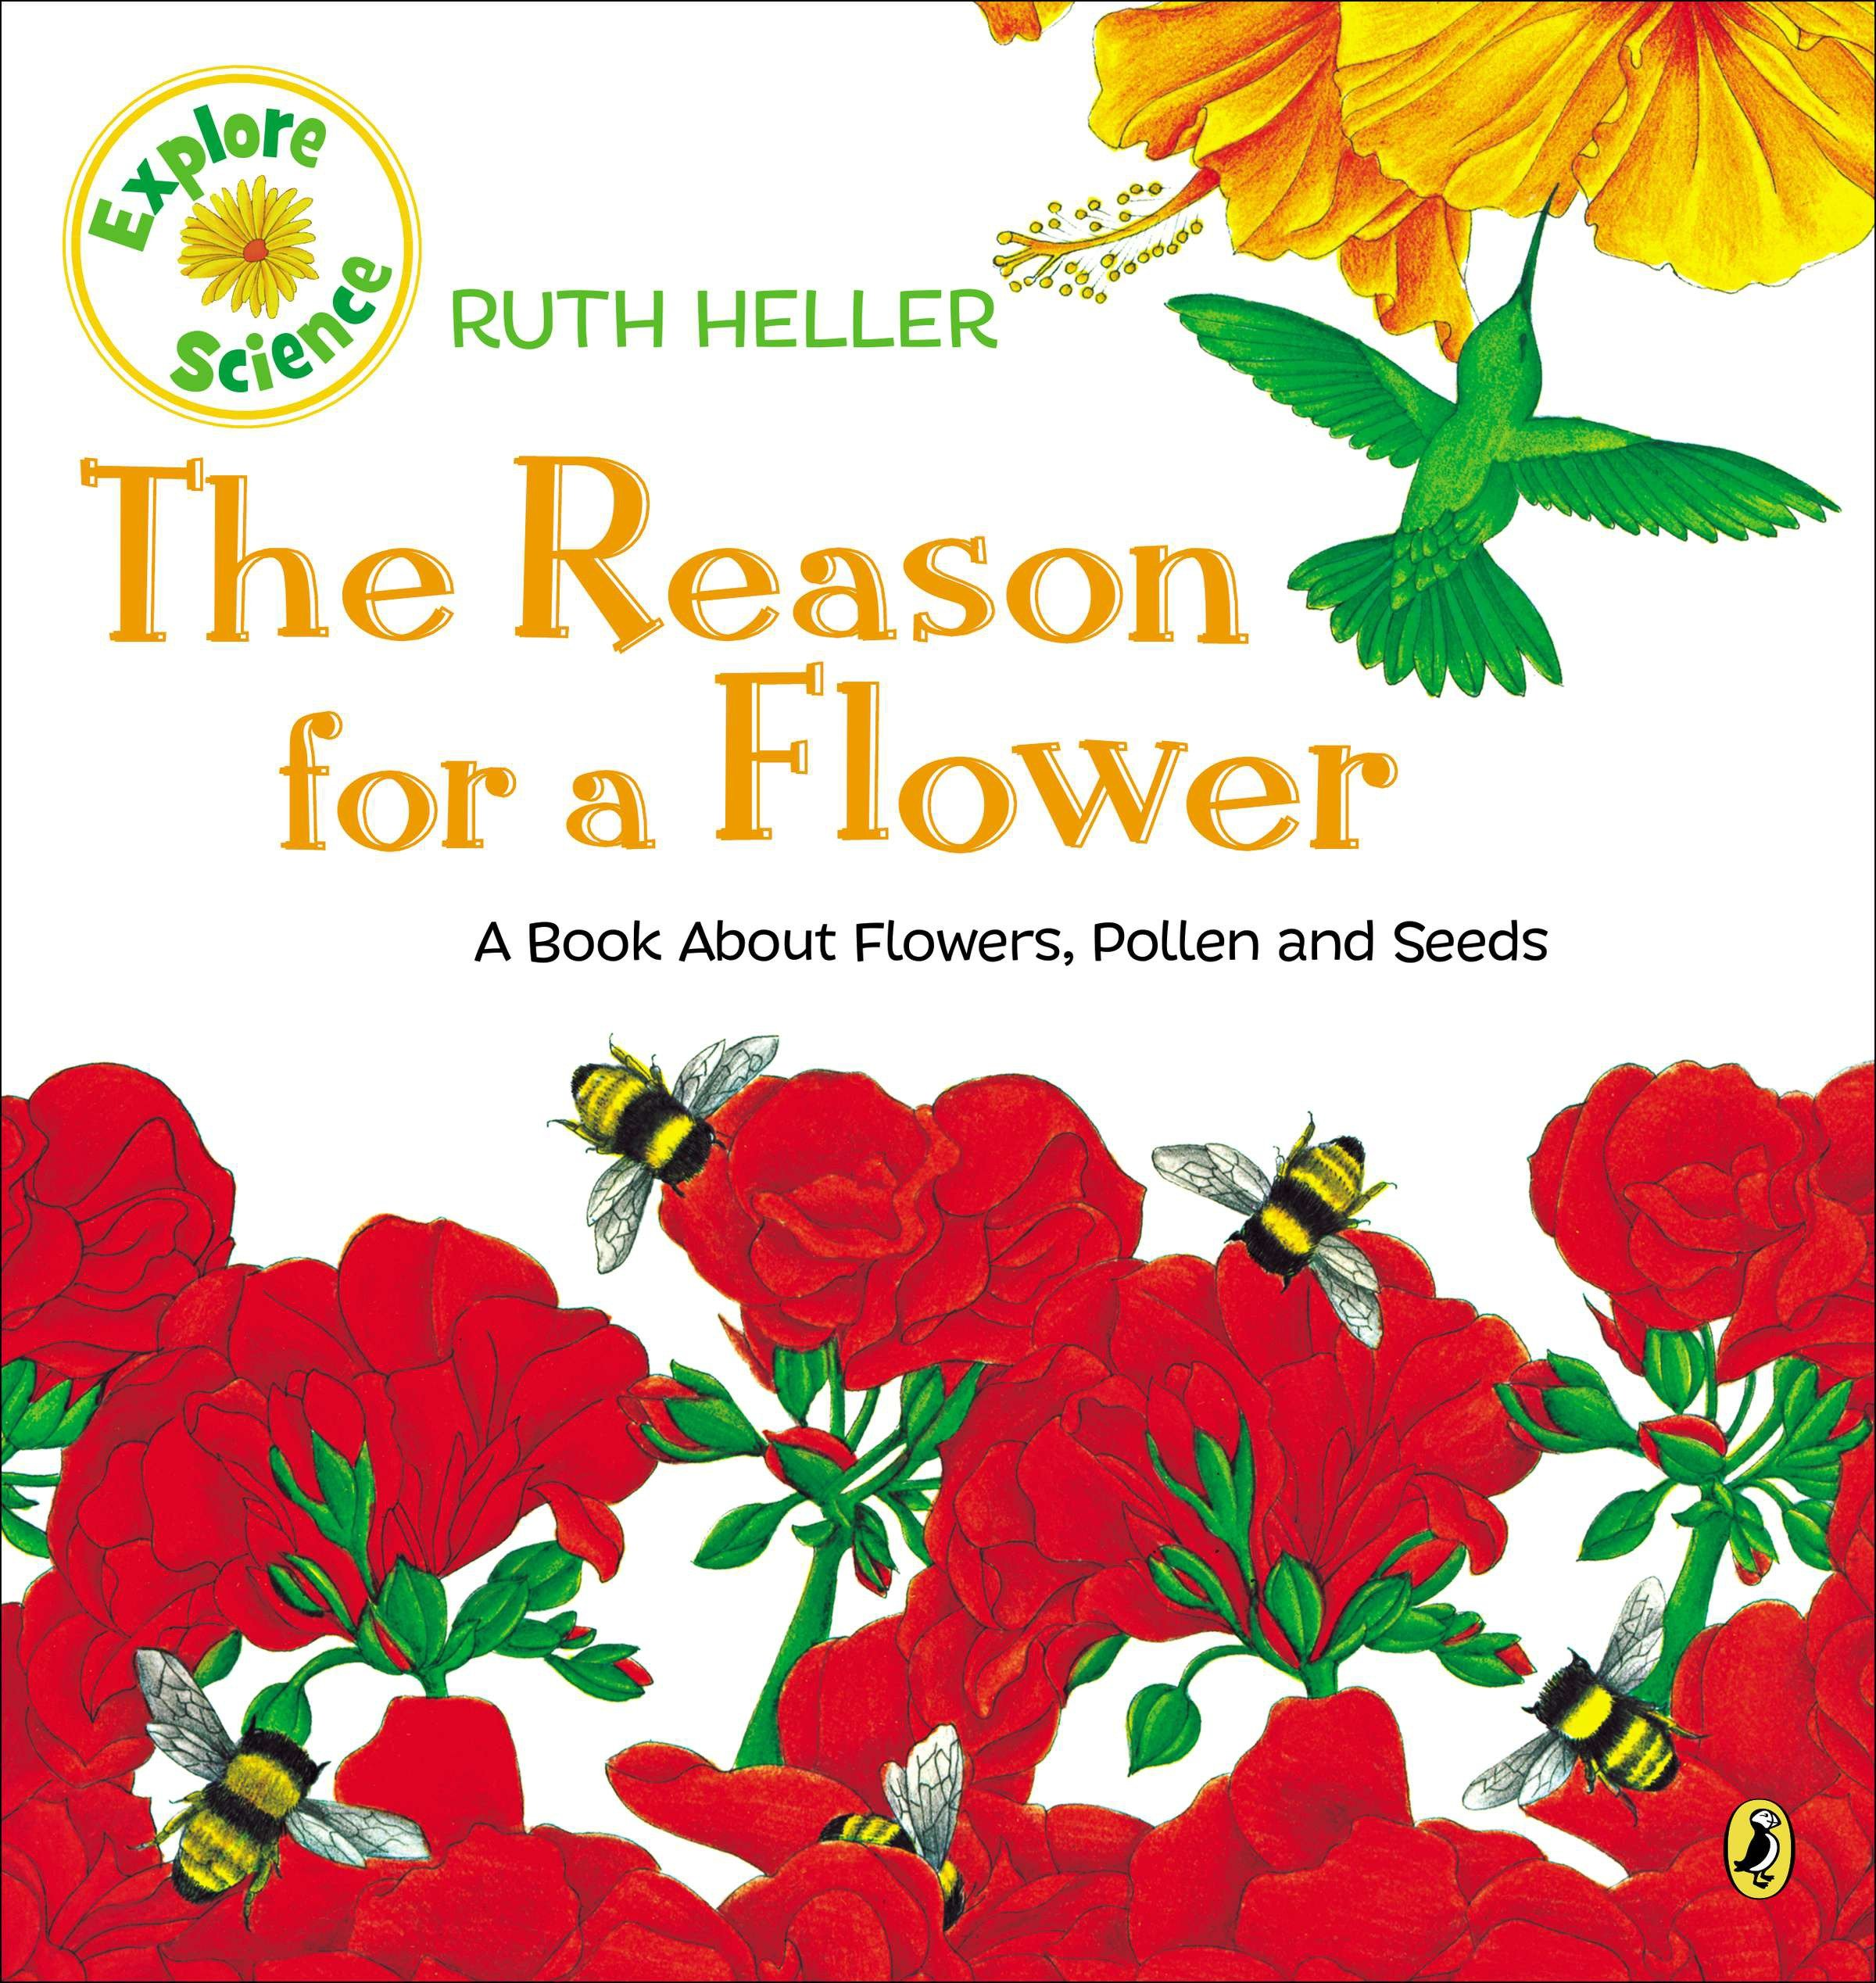 Ruth Heller's World of Nature: The Reason for a Flower (Paperback)